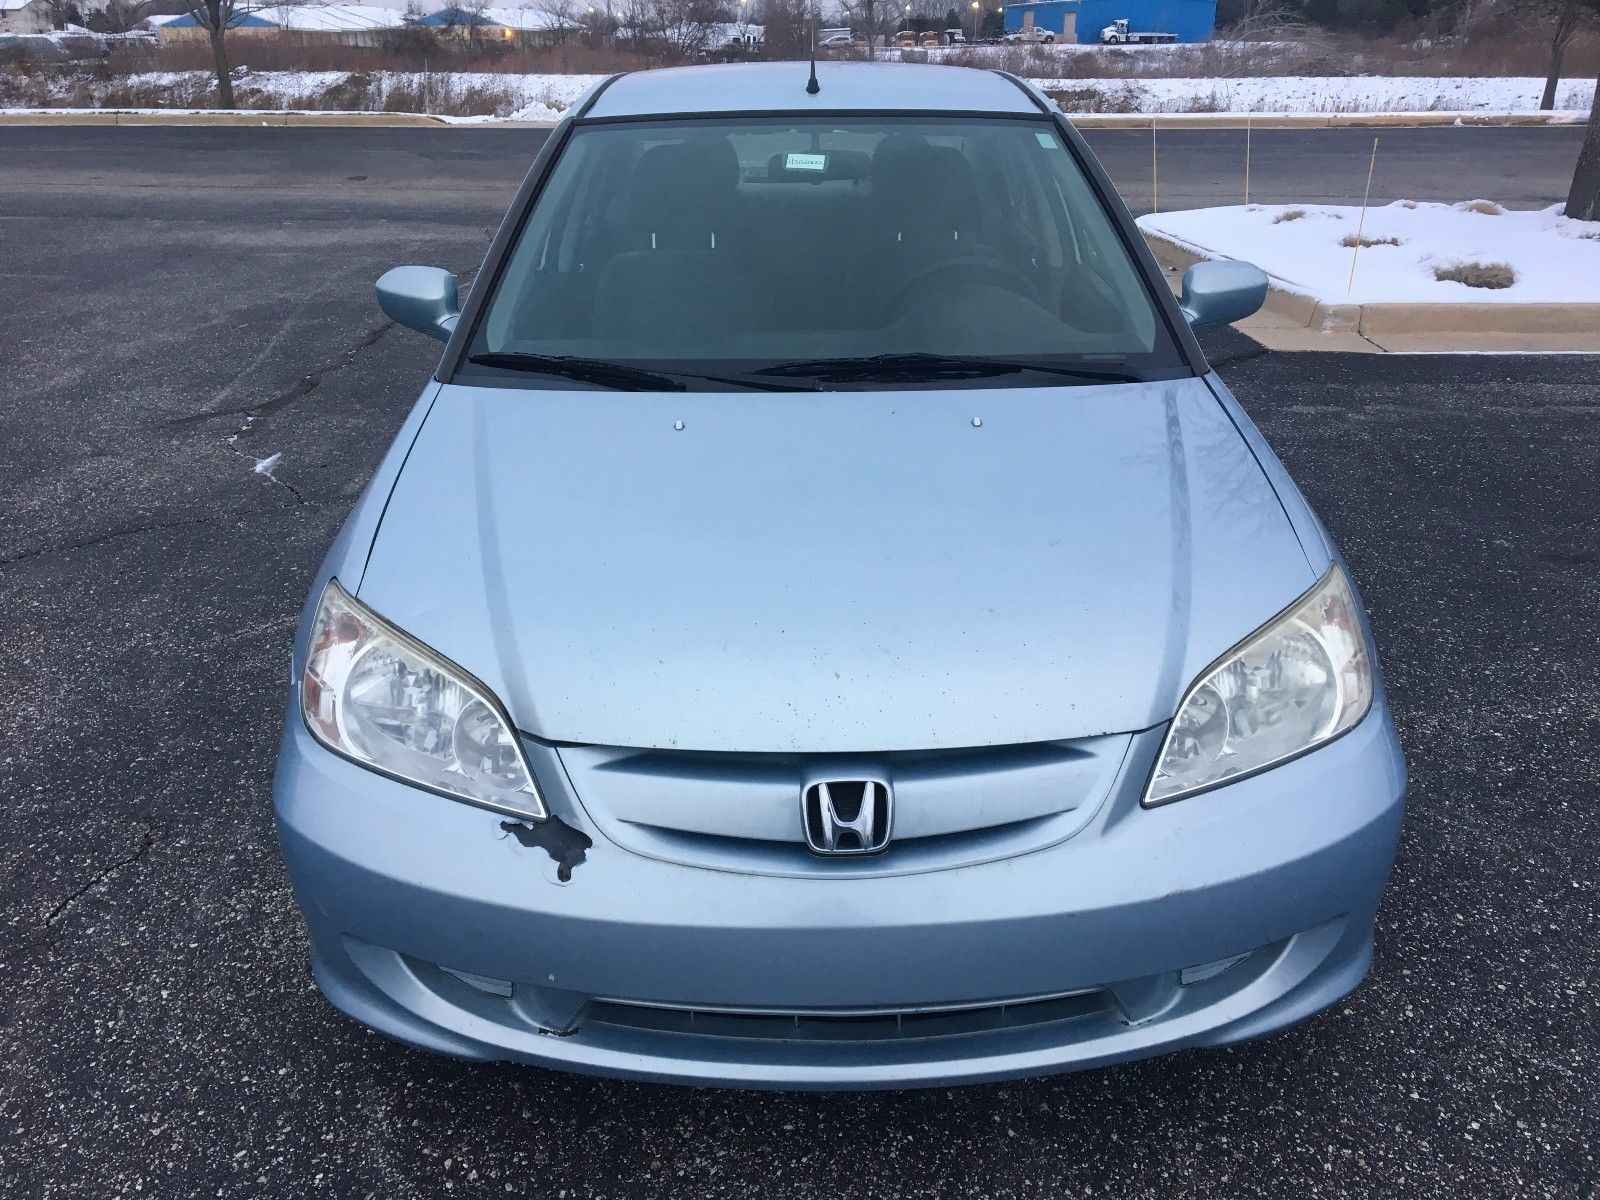 Awesome 2004 Honda Civic Hybrid No Reserve Ima Light On Fixer Upper Winter Beater As Is 2017 2018